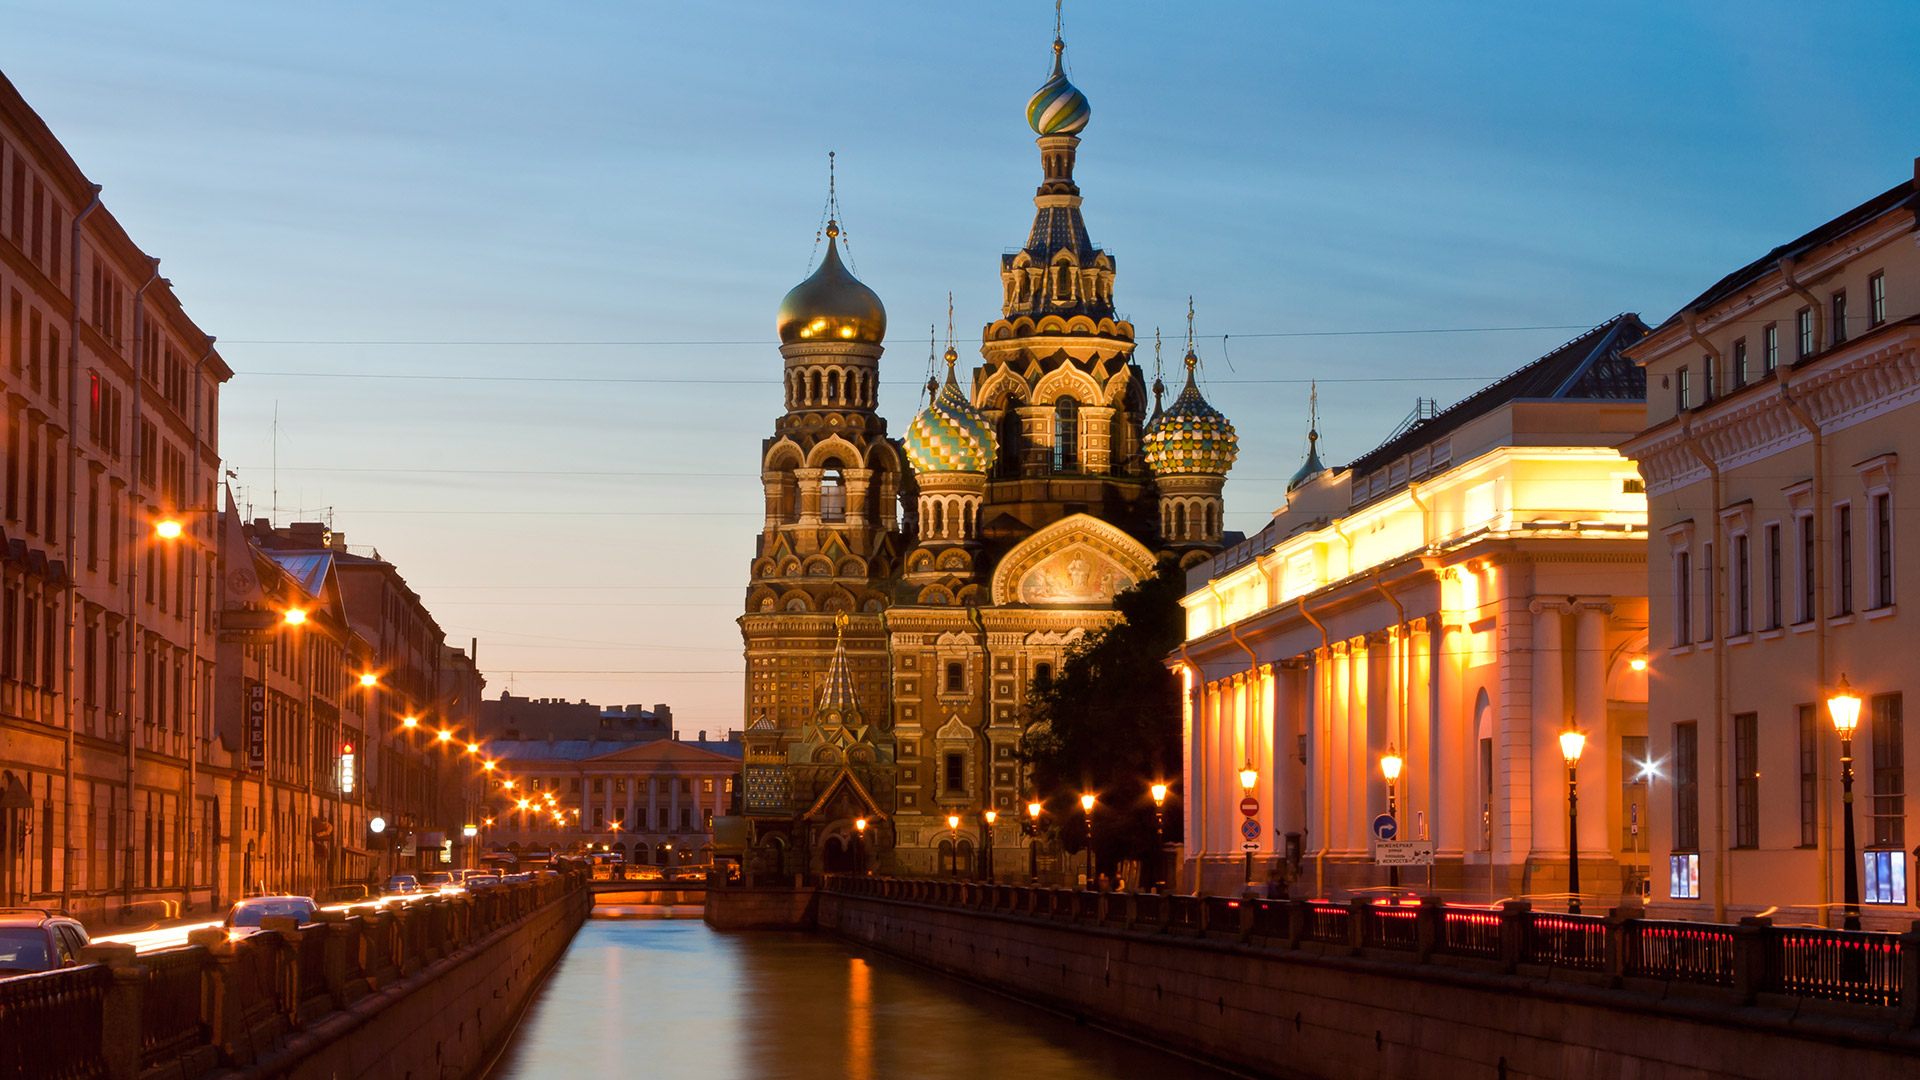 Saint Petersburg. Church of the Savior on Blood